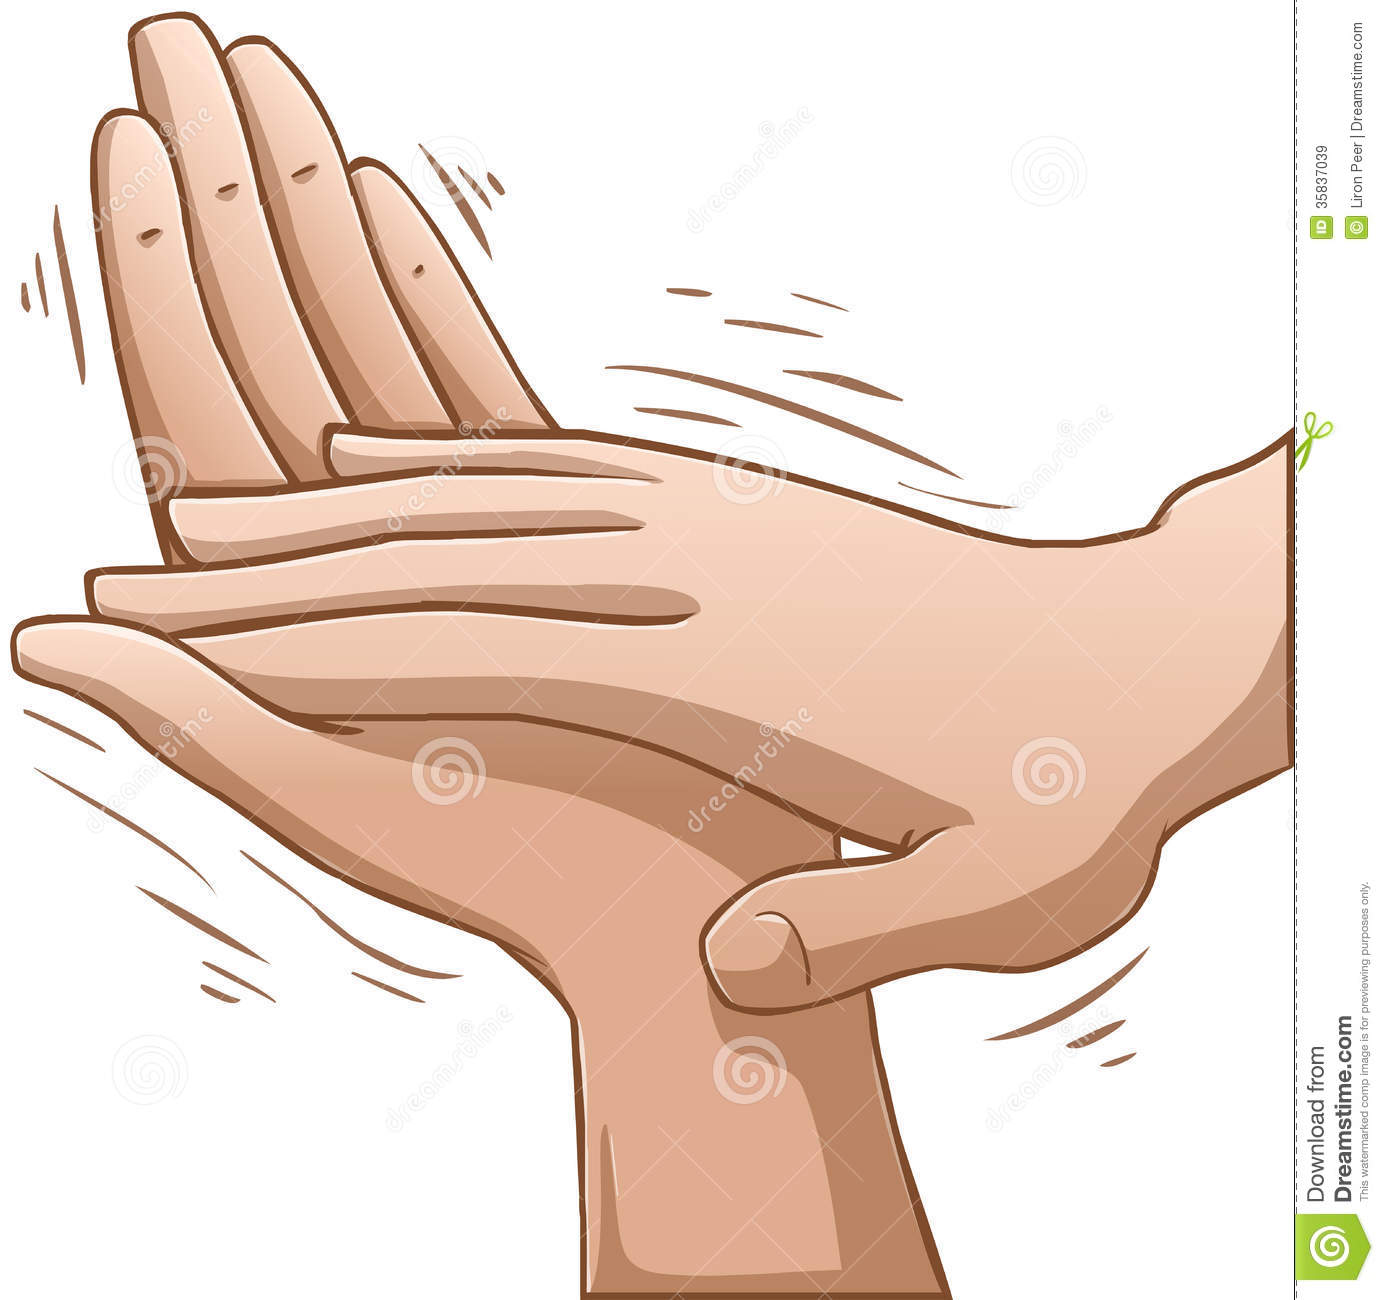 Applause Clipart Clapping Hands Royalty -Applause Clipart Clapping Hands Royalty Free-3